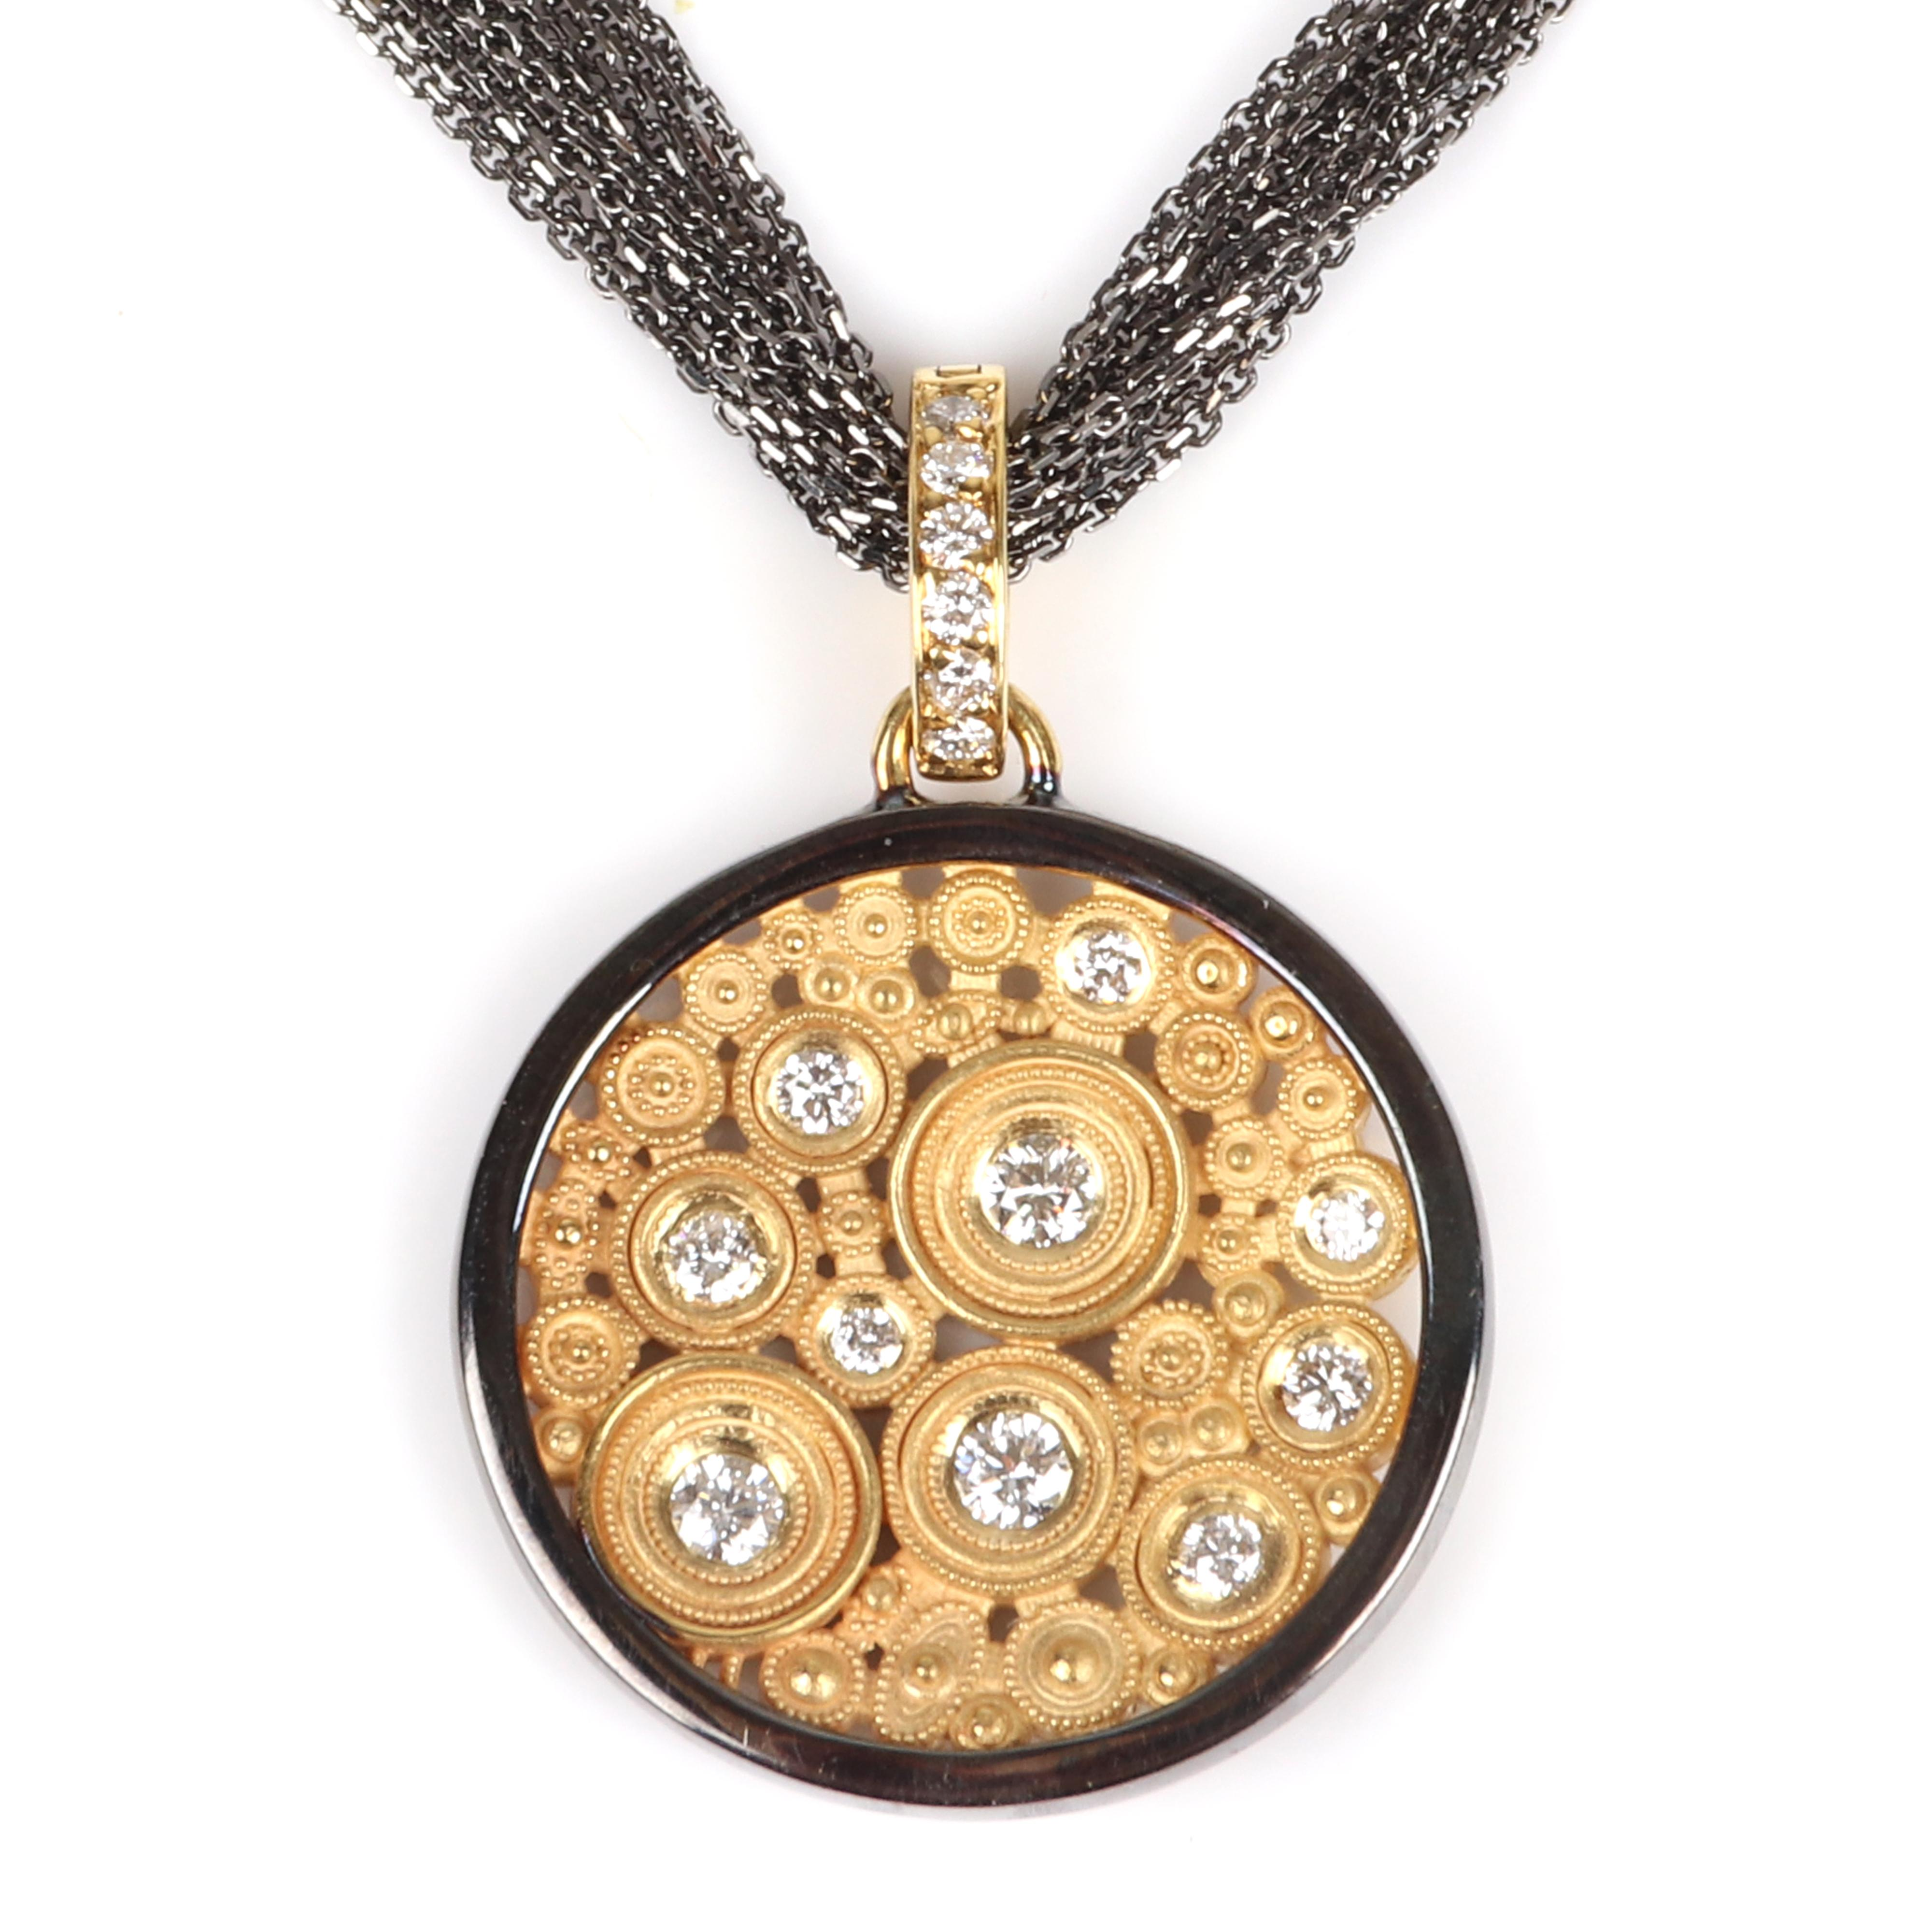 "18K yellow and black gold and diamond circle pendant on multi 10 strand stamped 18K black gold chain. 21"" longest length, 7/8"" diam. (pendant) 14.15 dwt."